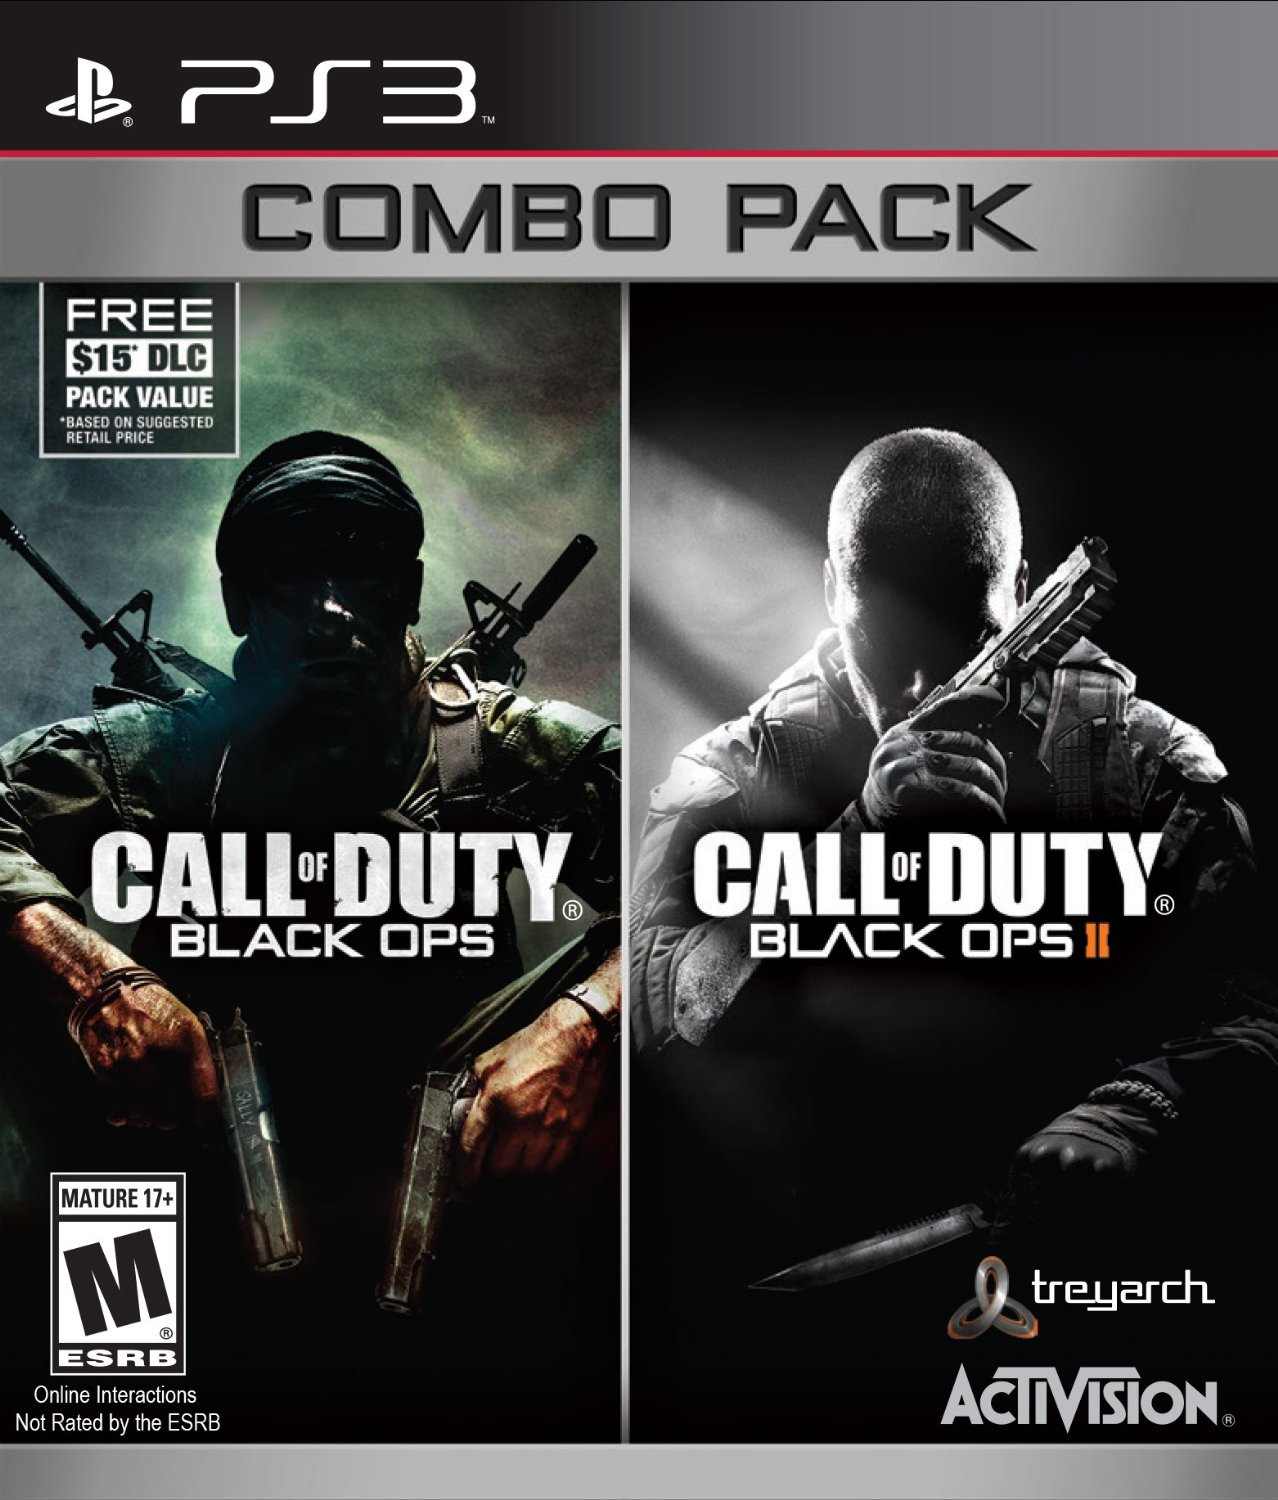 Call of Duty Combo Pack